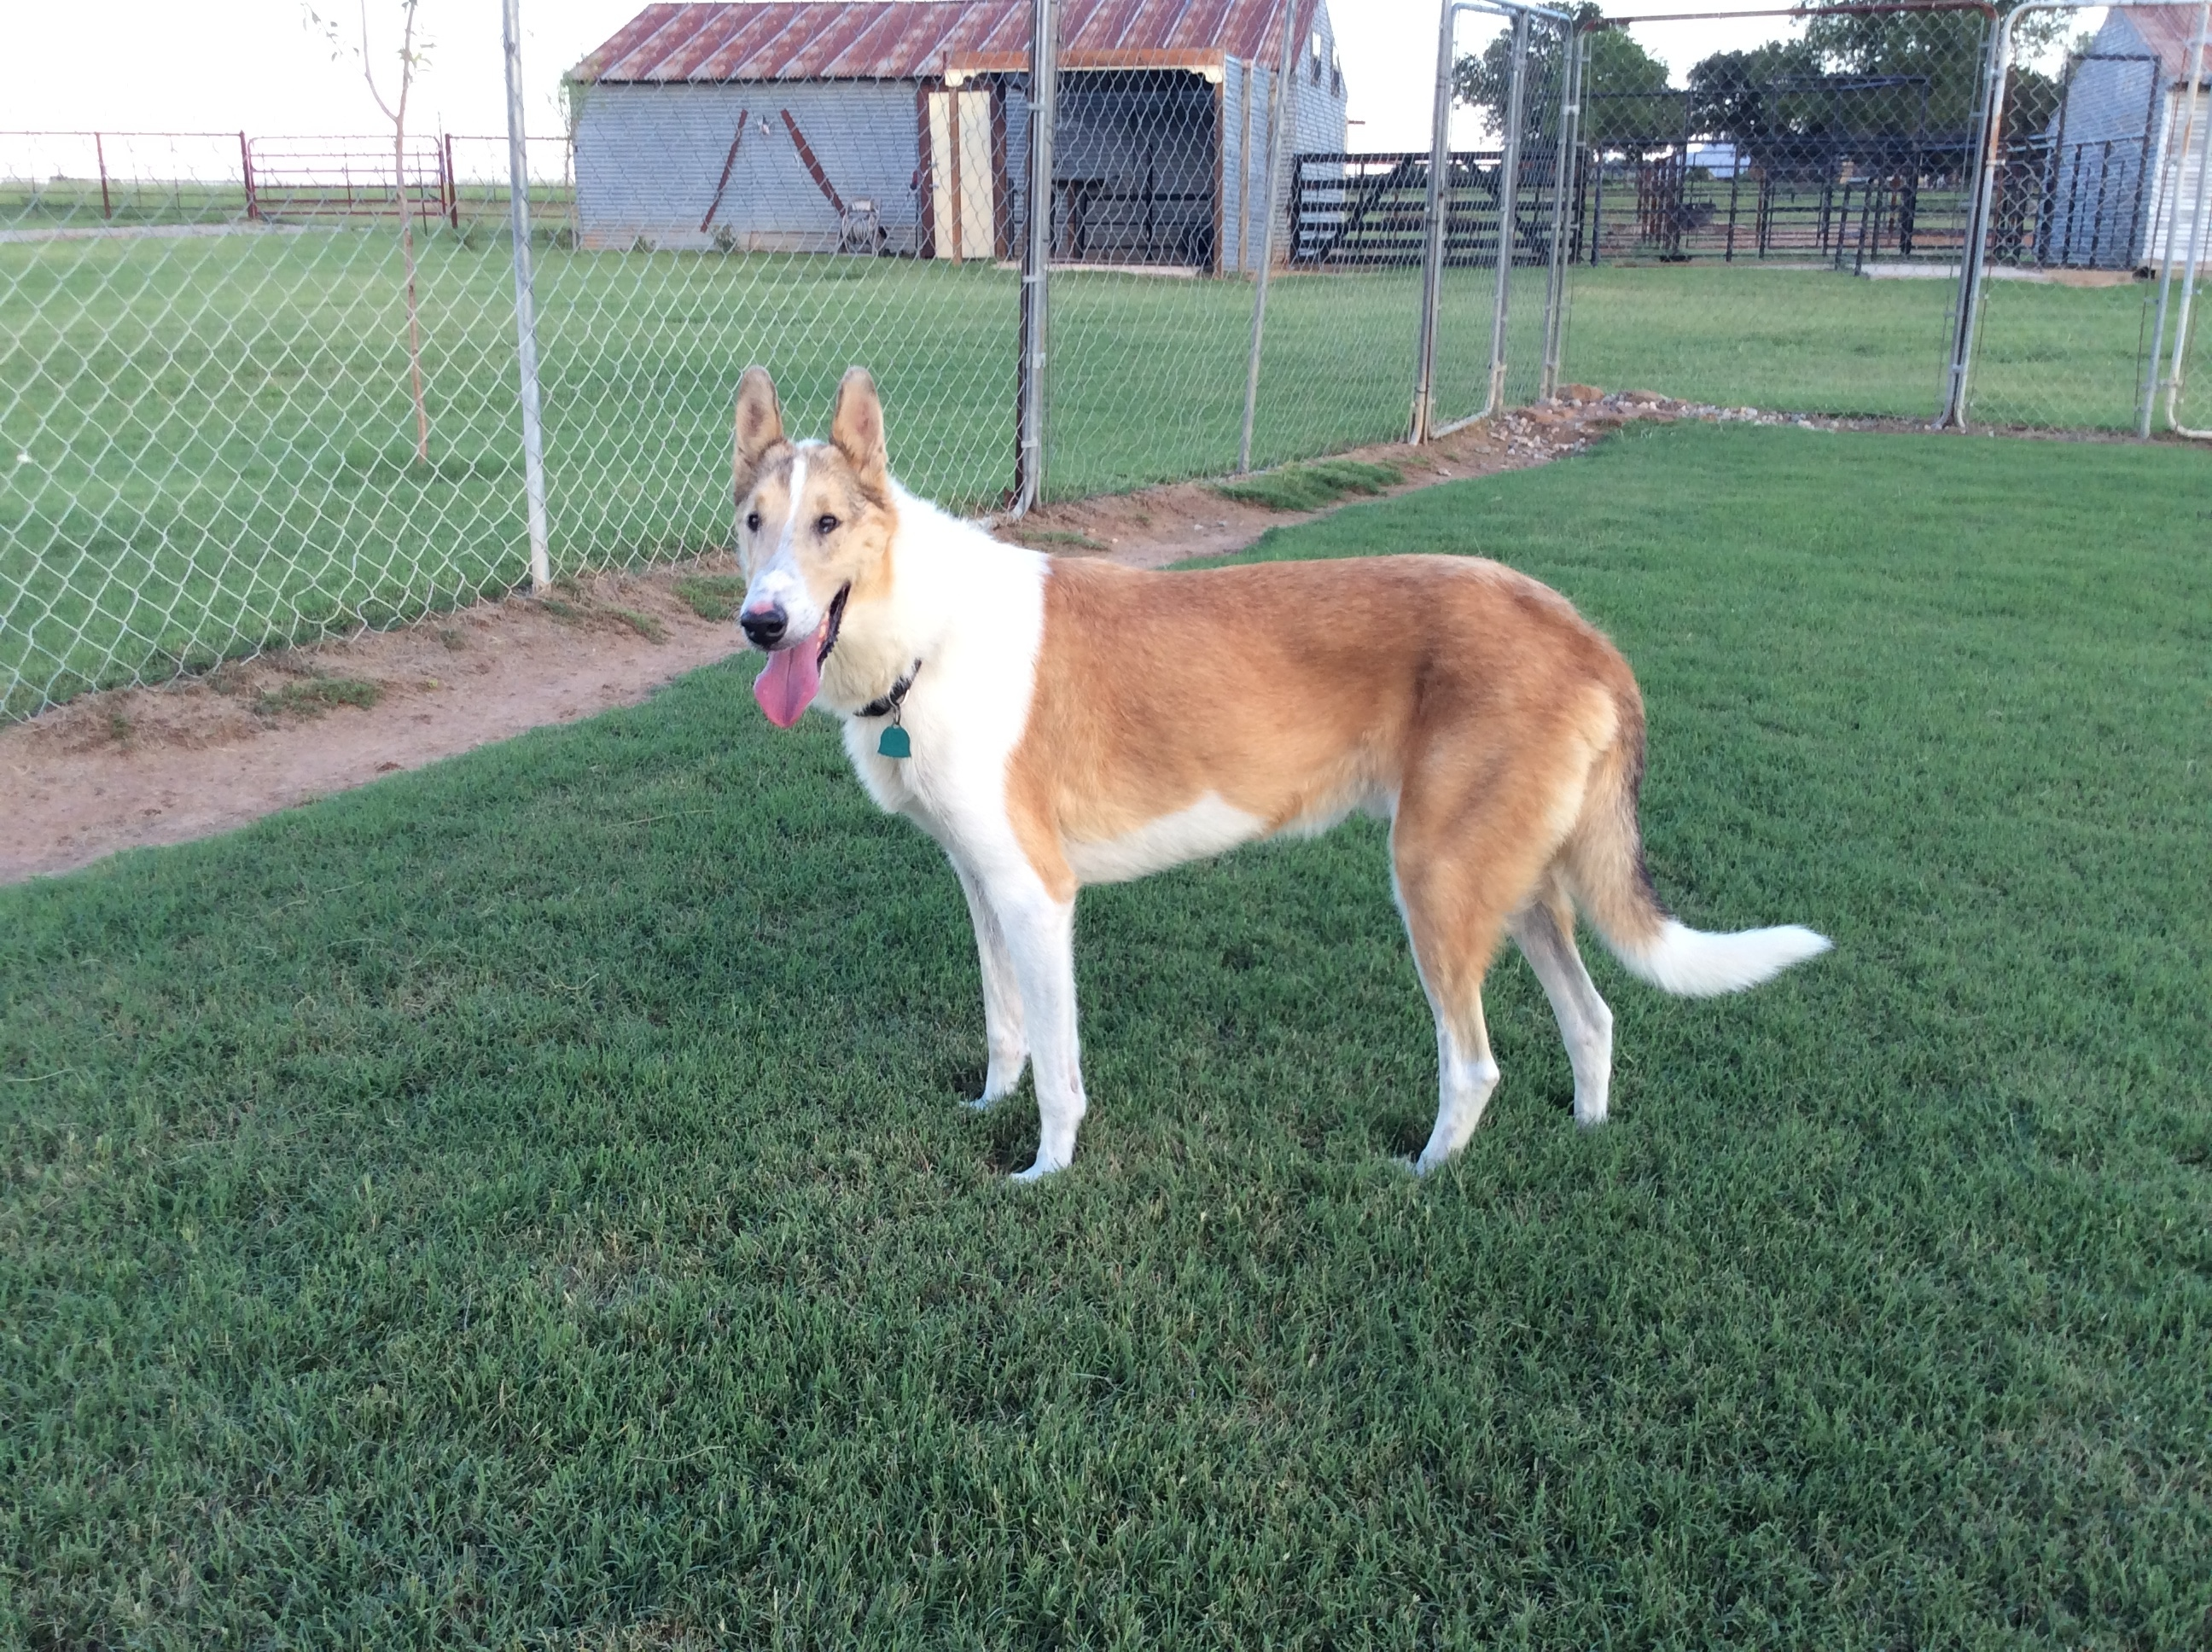 A sable and white smooth collie